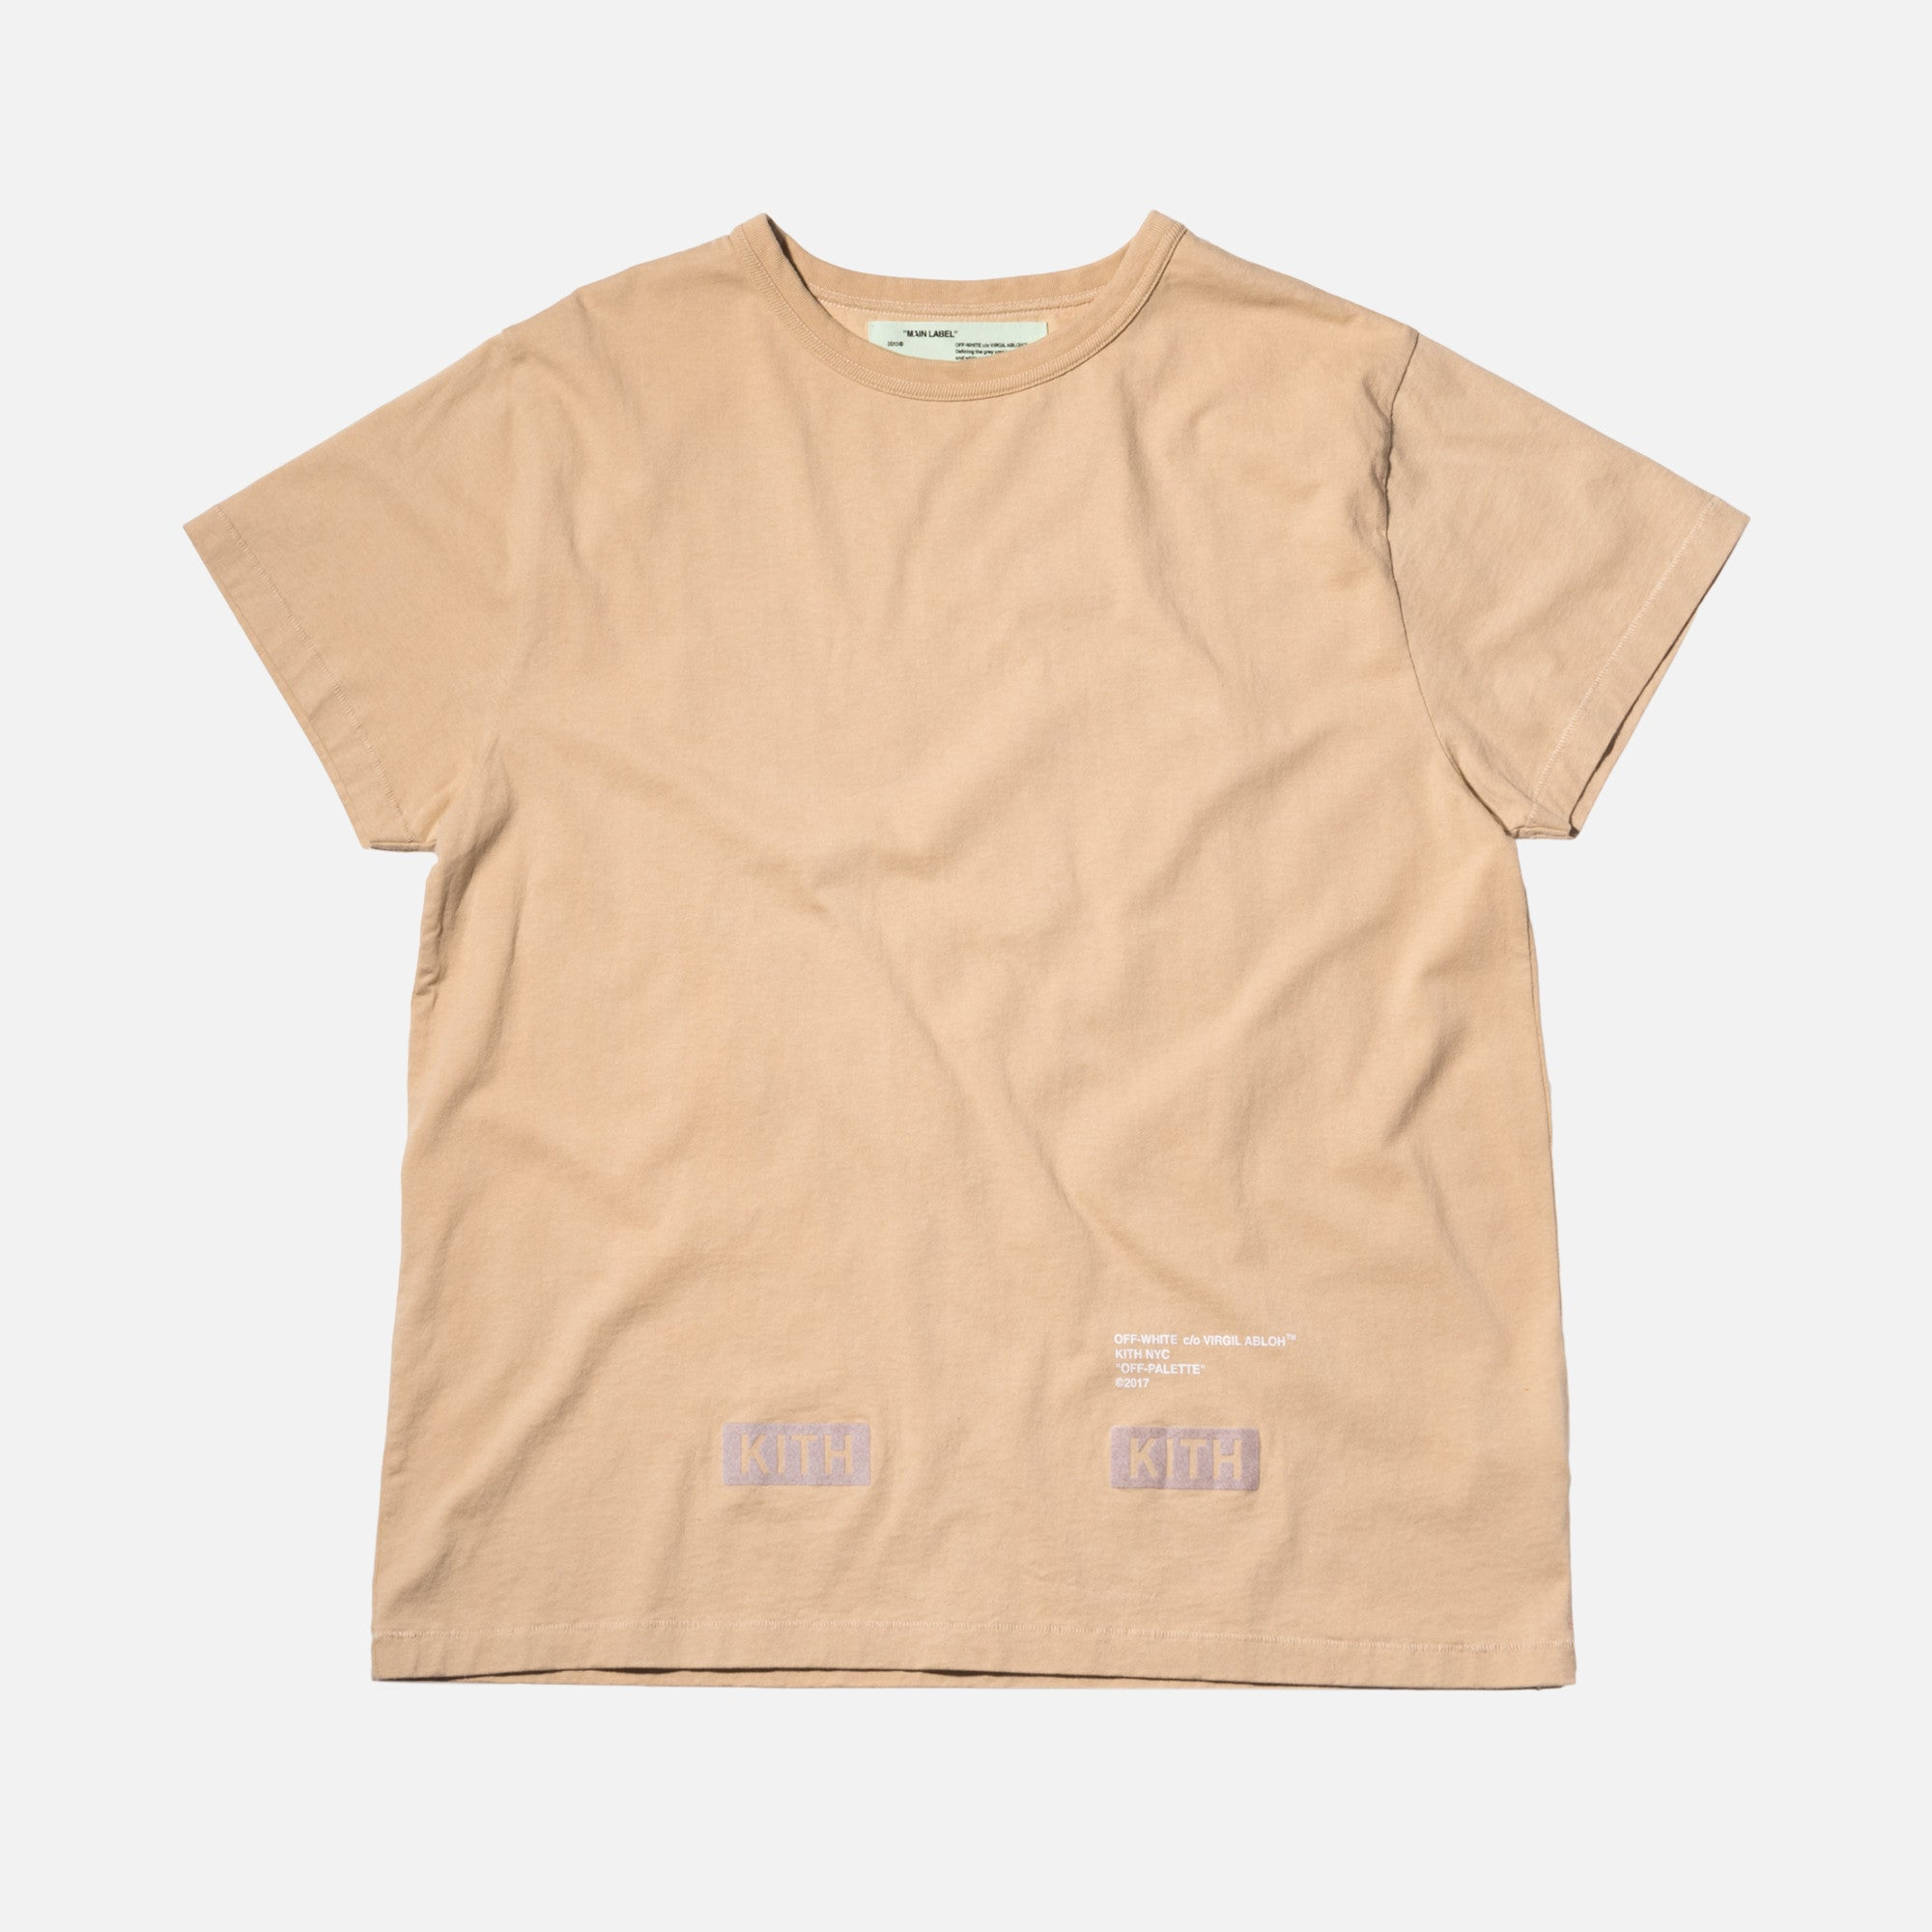 Kith x Off-White Flocked Tee - Sand